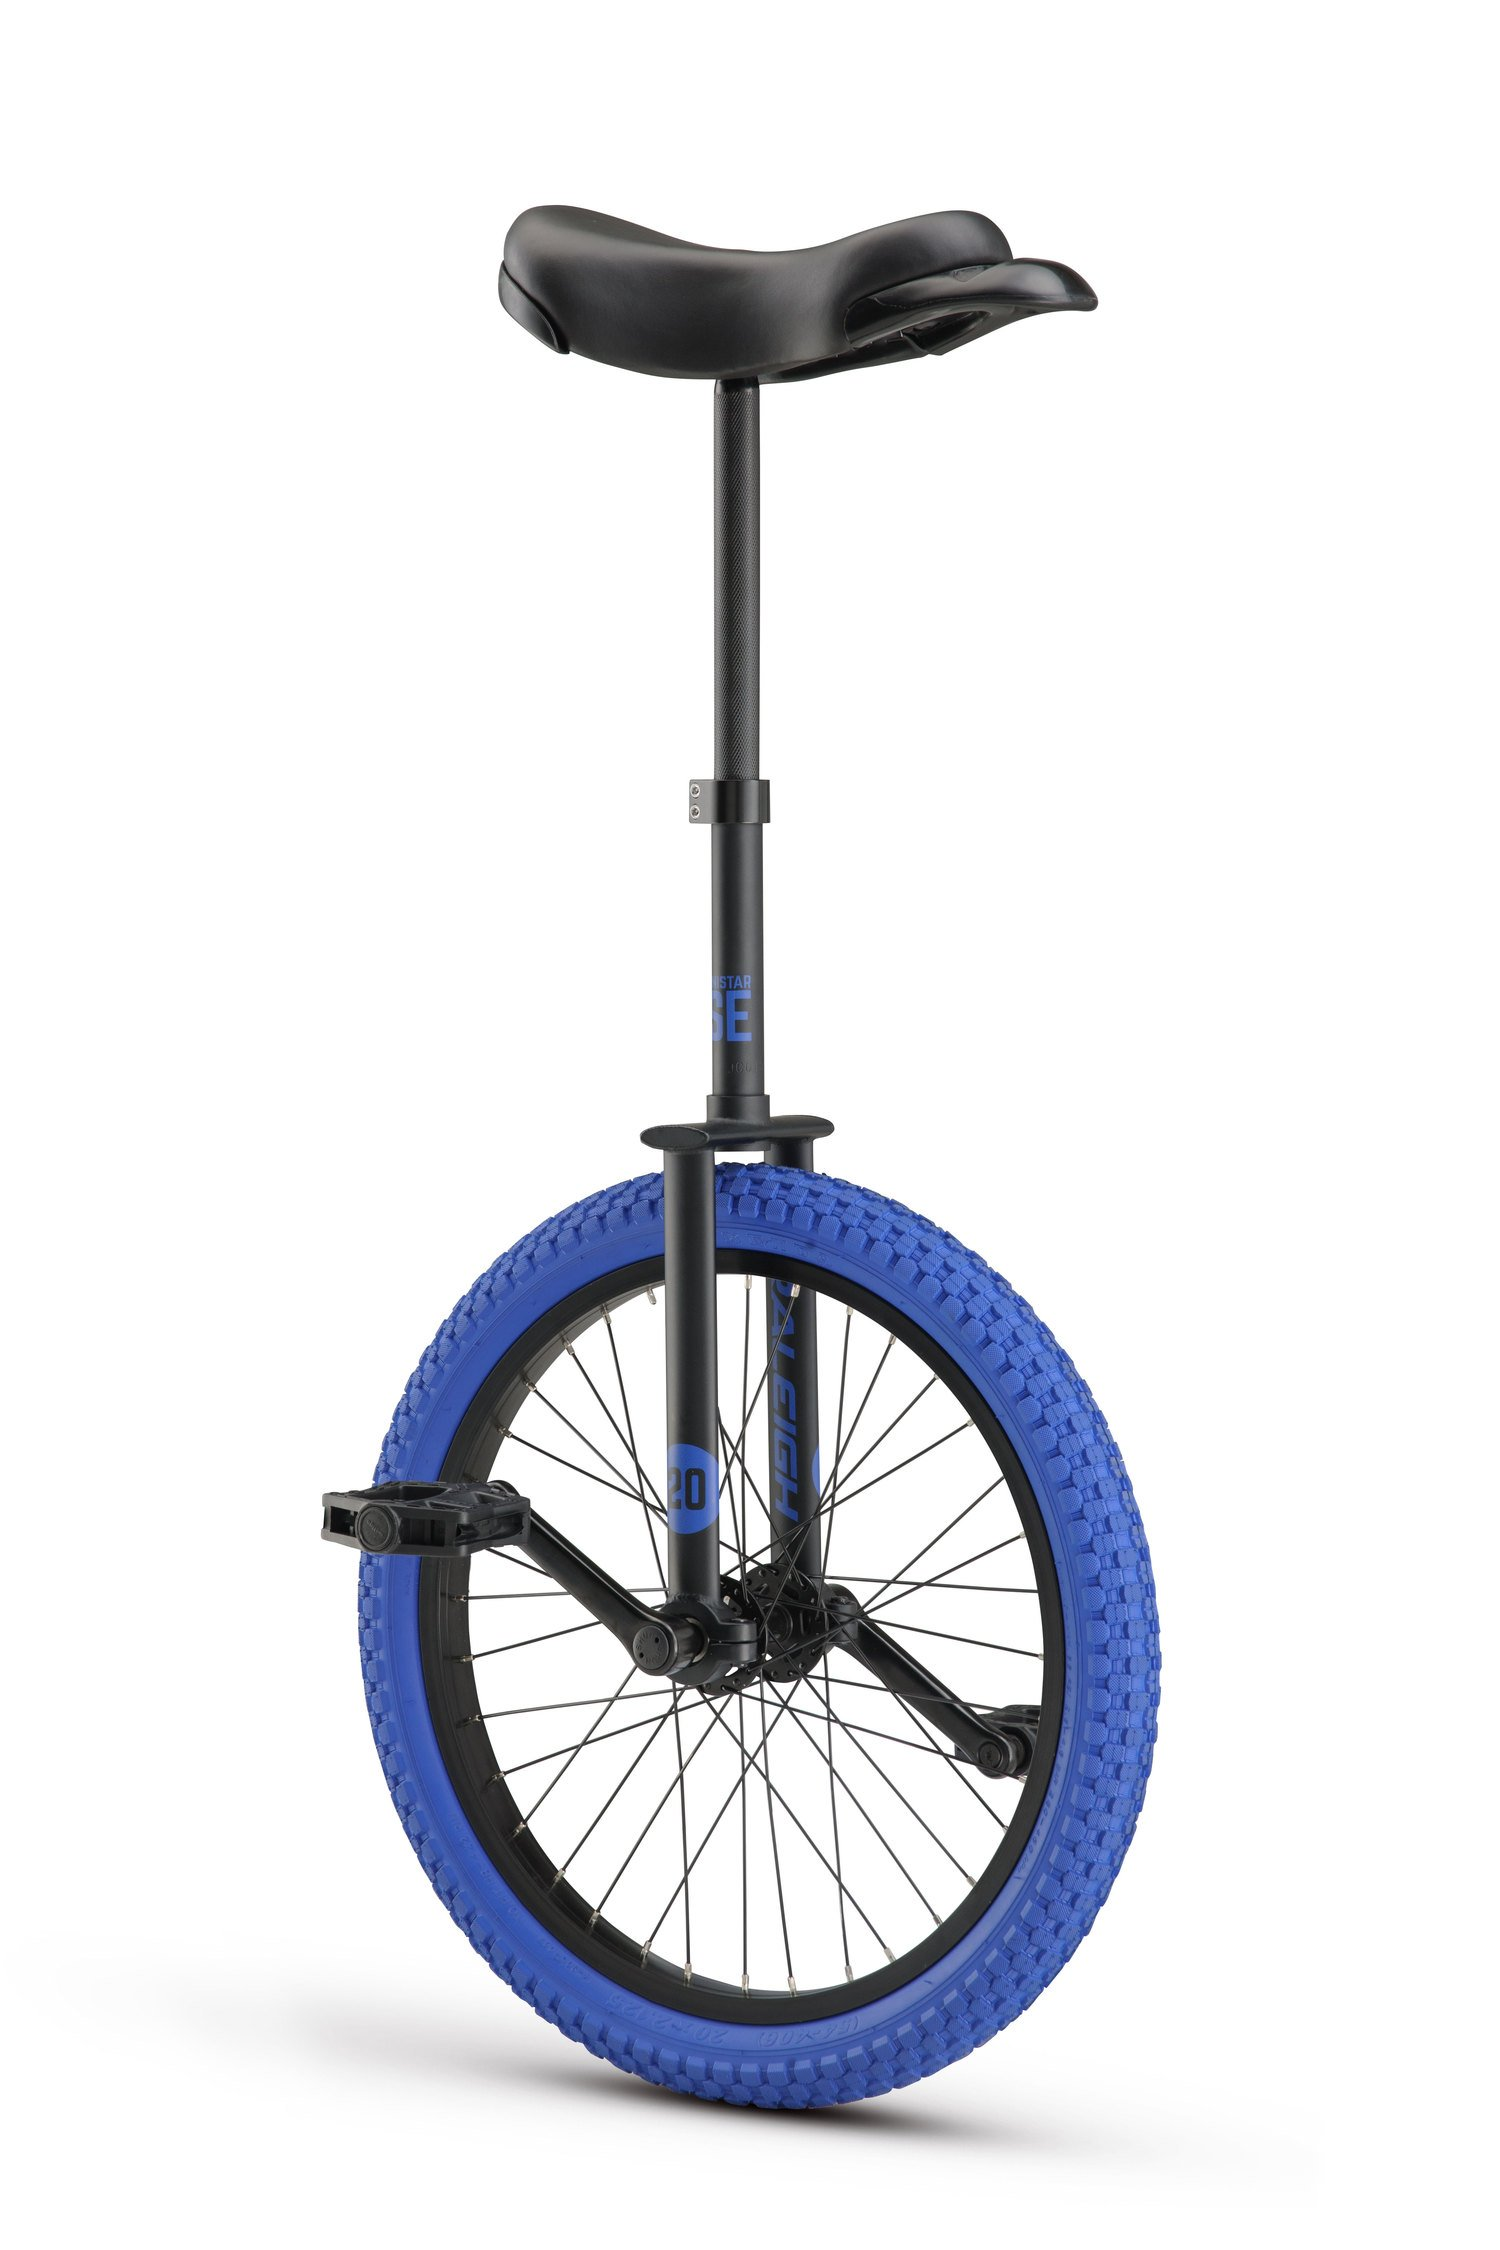 RALEIGH Unistar SE 20, 20inch Wheel Unicycle, Black